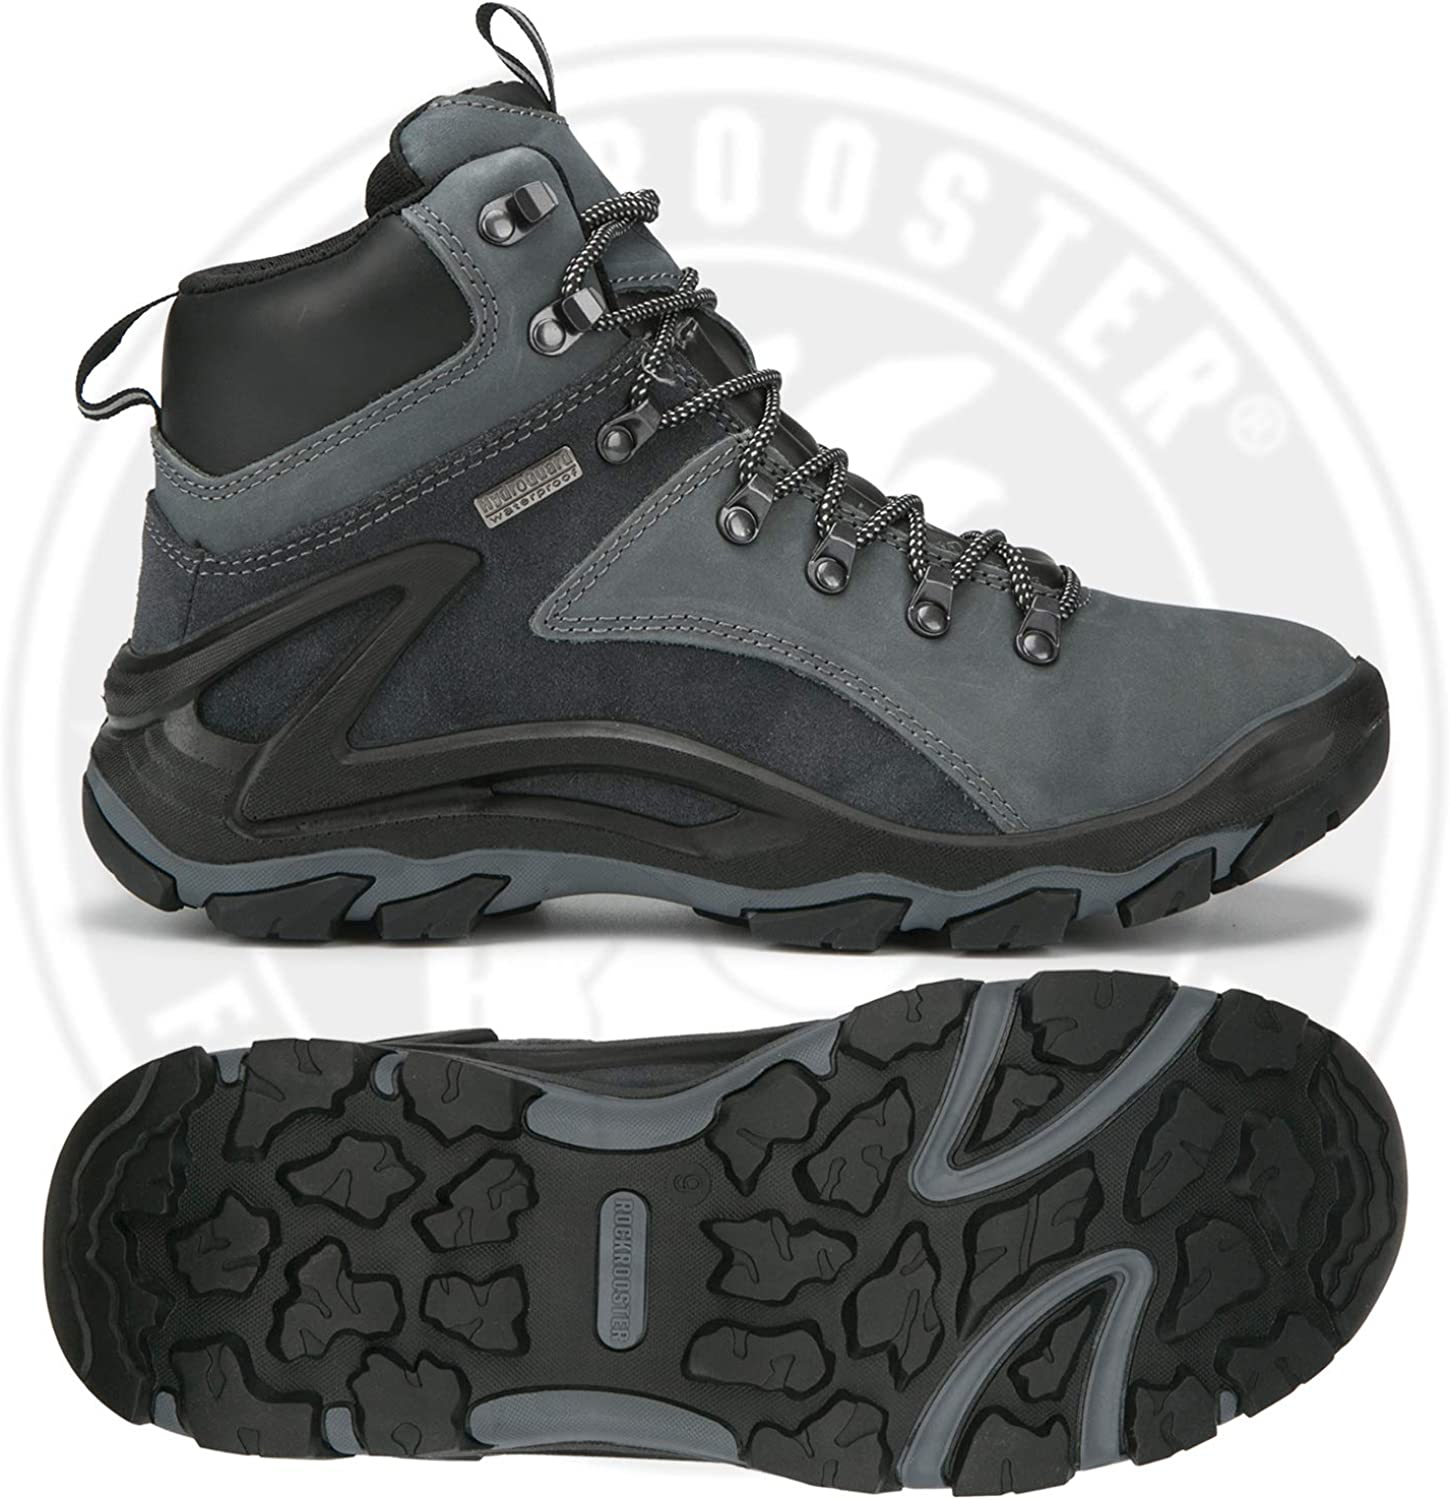 Ankle Anti-Fatigue,KS257 KS258 ROCKROOSTER Mens Hiking Boots Lightweight Coolmax Breathable Waterproof 6 Non Slip Outdoor Mountaineeting Shoes